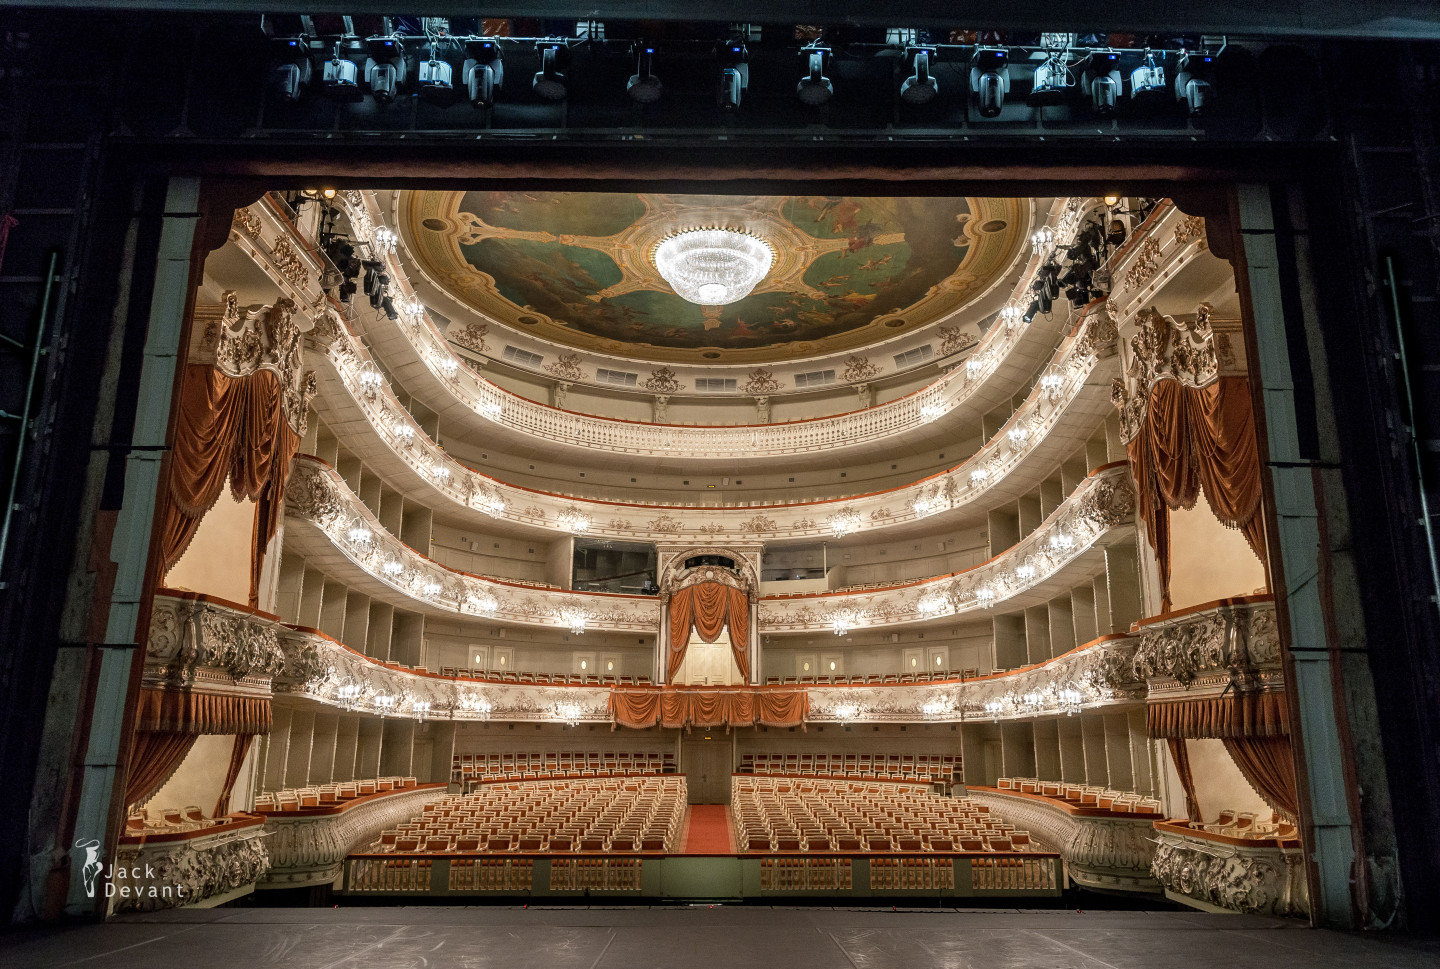 The Mikhailovsky Theatre